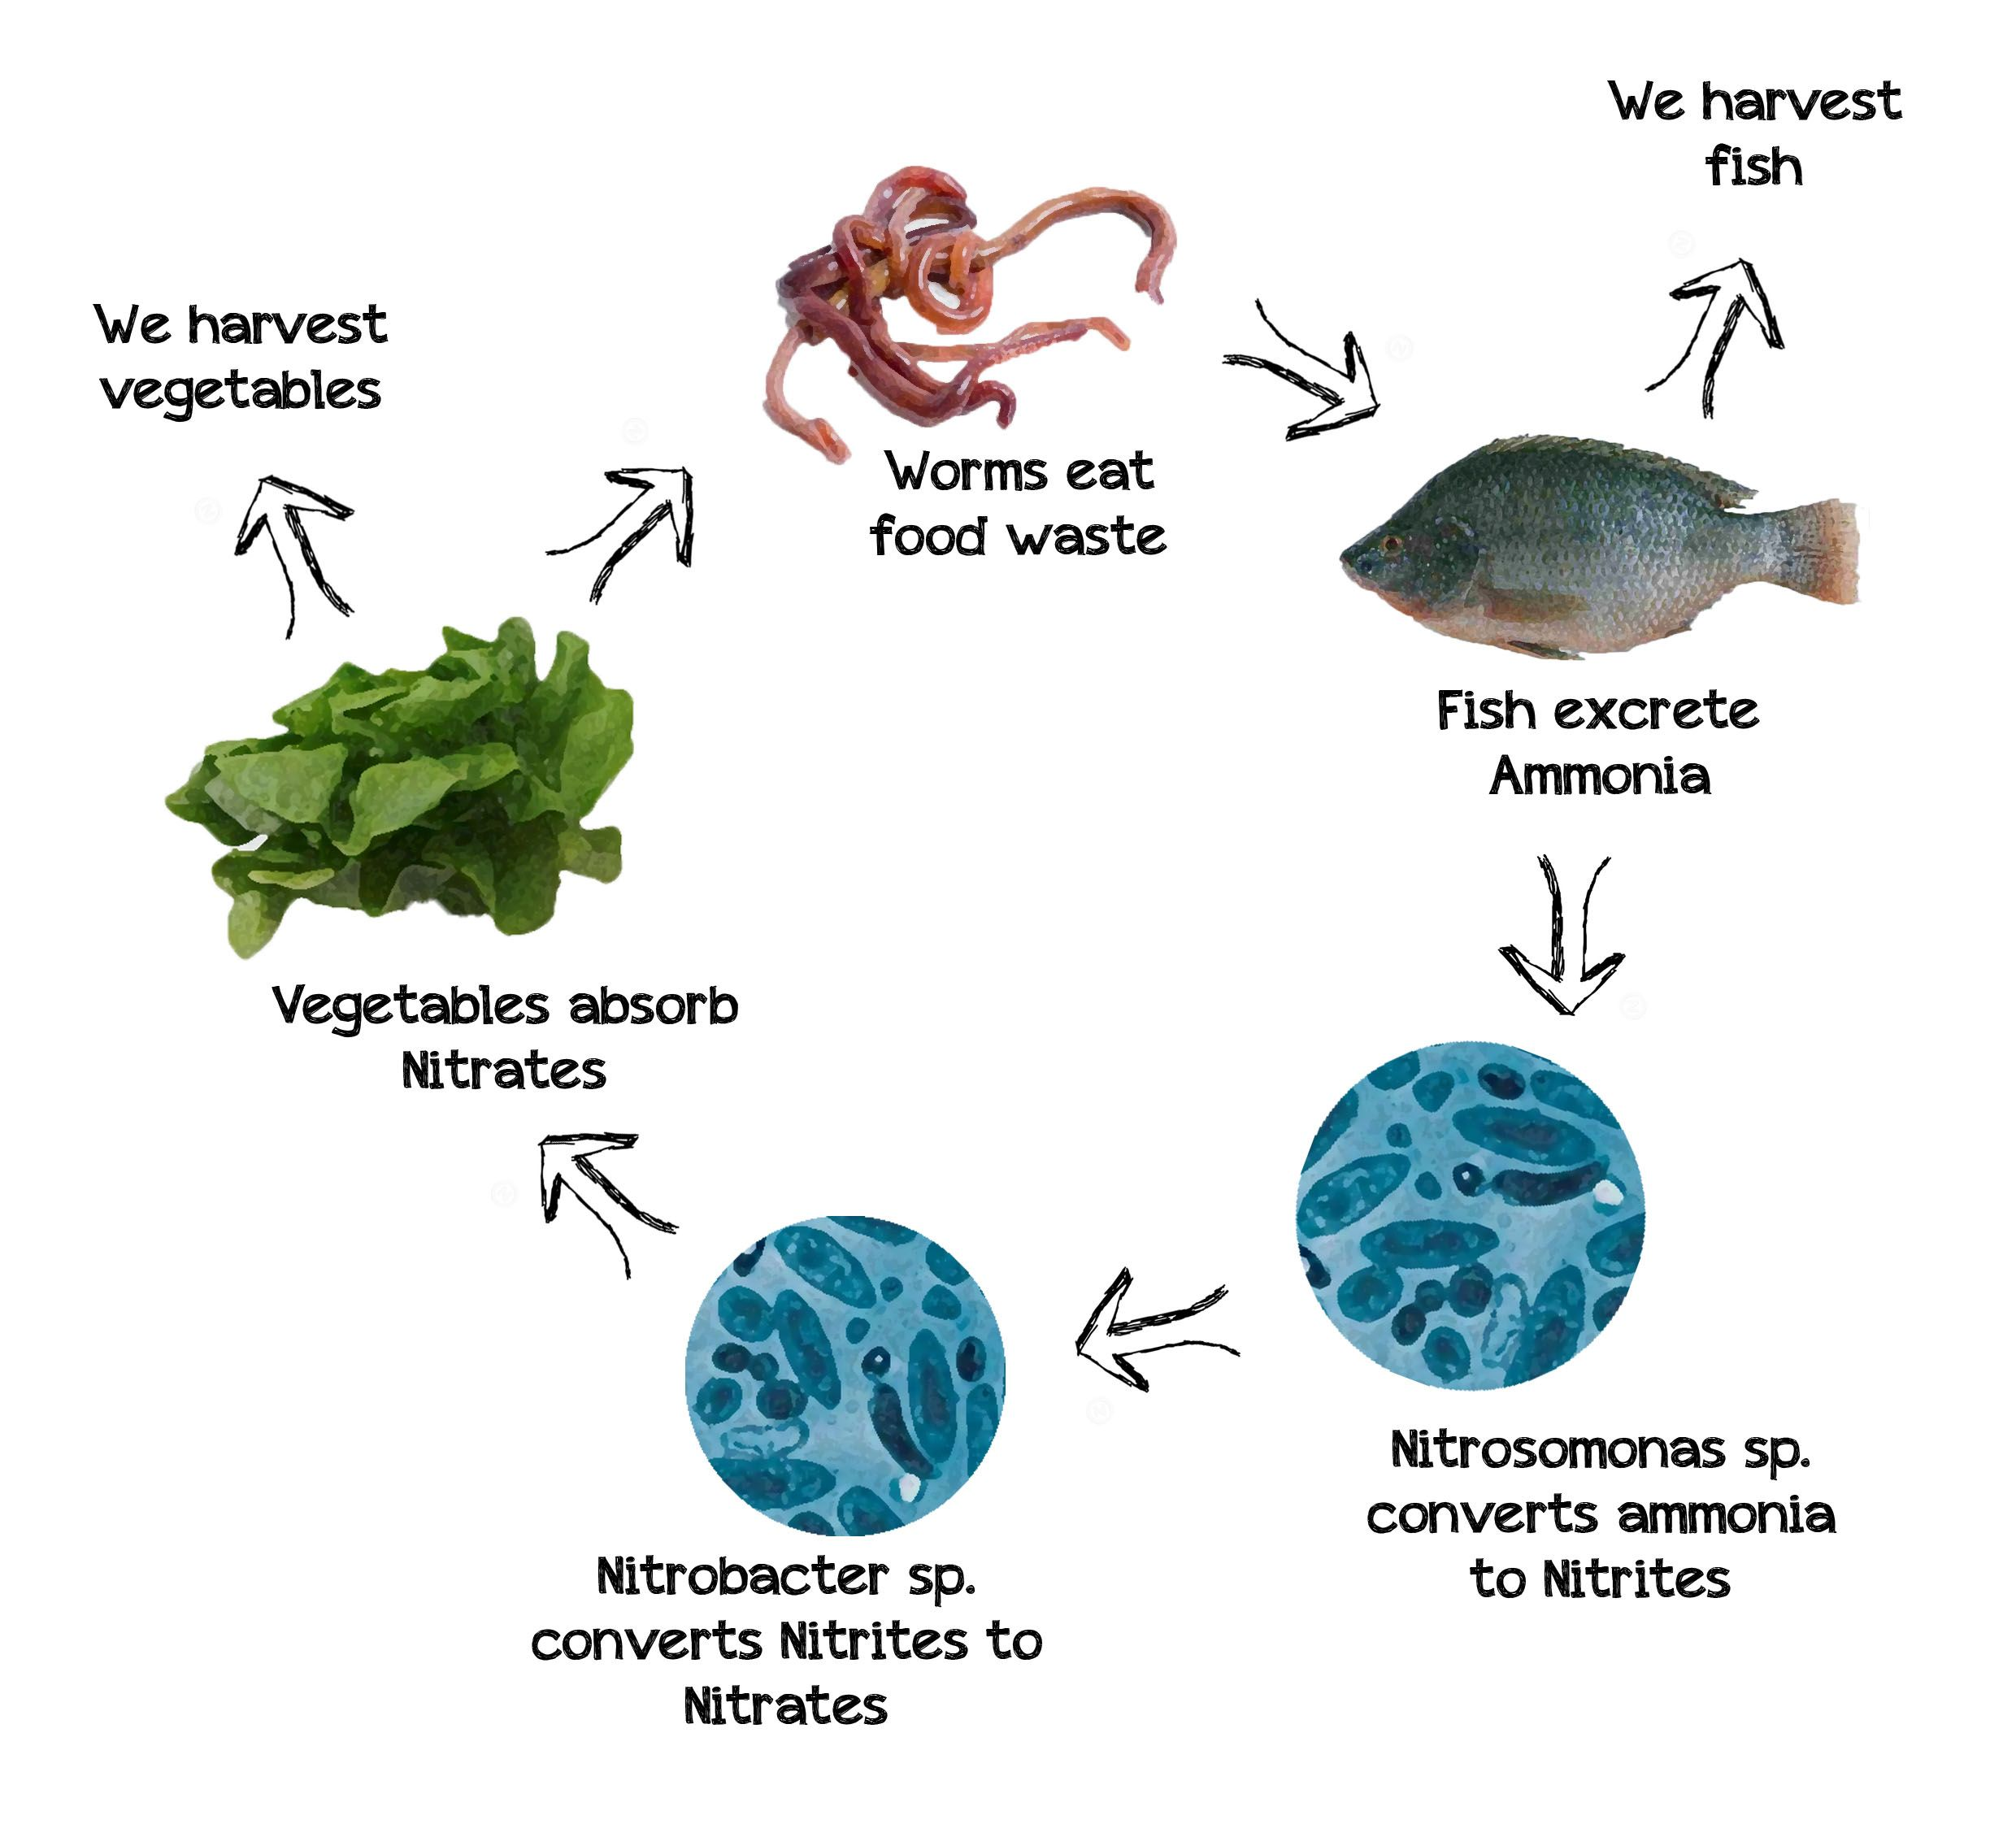 Fish in aquarium cycle -  Aquaponics Is The Cultivation Of Fish And Plants Together In A Constructed Recirculating Ecosystem Utilising Natural Bacterial Cycles To Convert Fish Waste